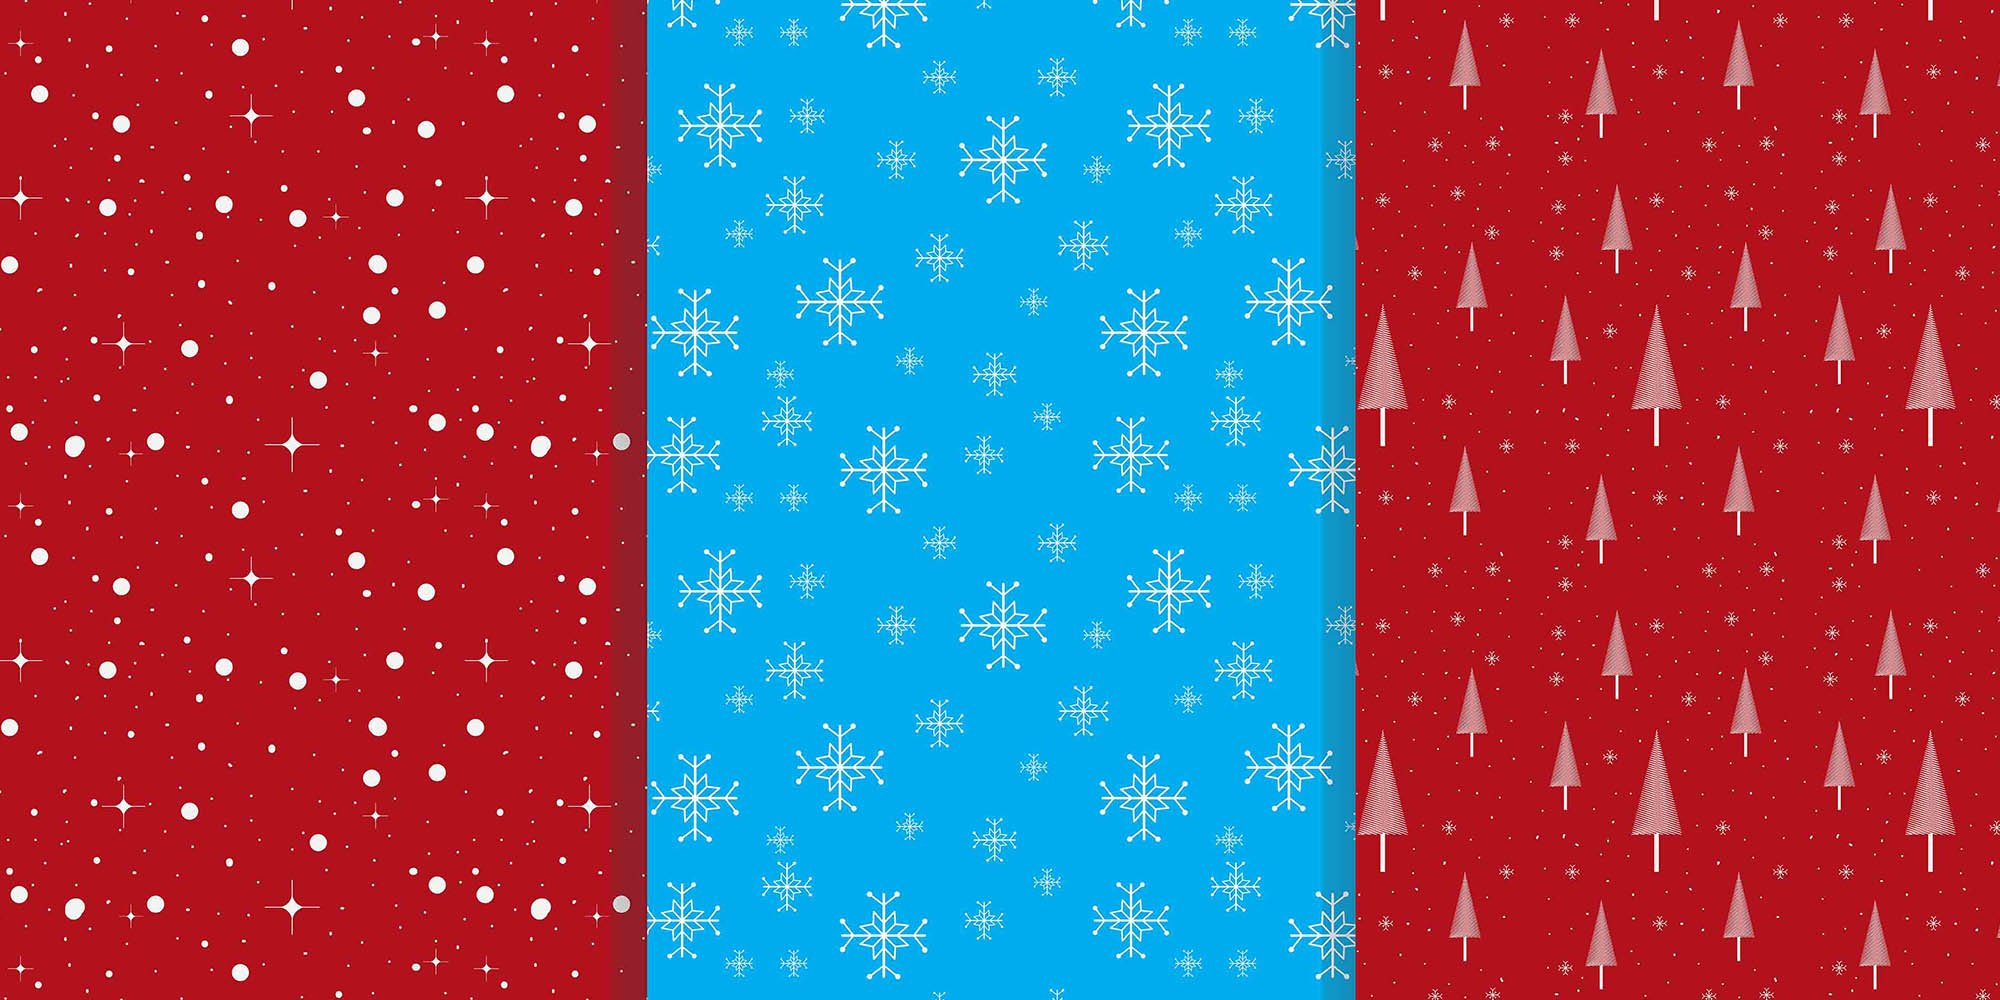 9 Christmas Patterns Vector Art .EPS - christmas pattern 3